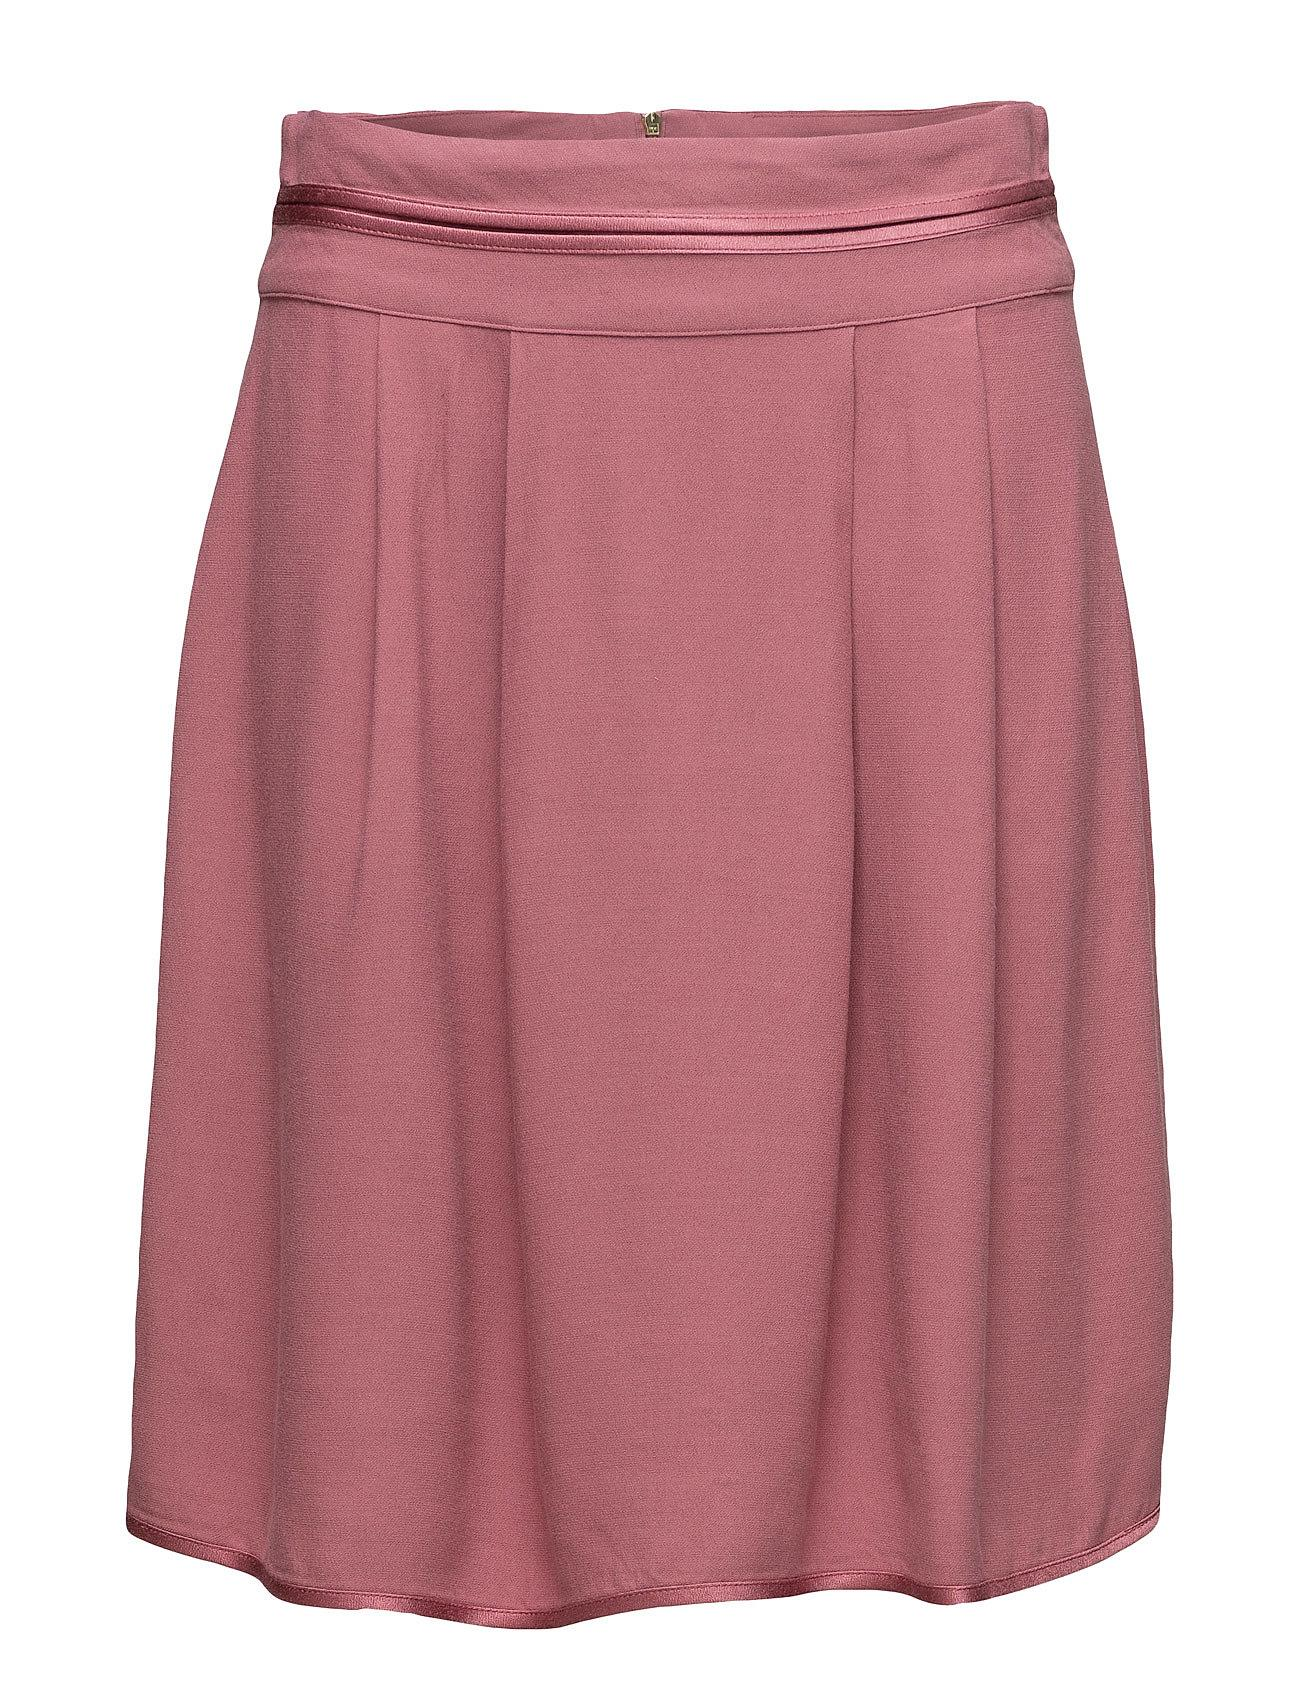 Esprit Collection Skirts Light Woven 299215833